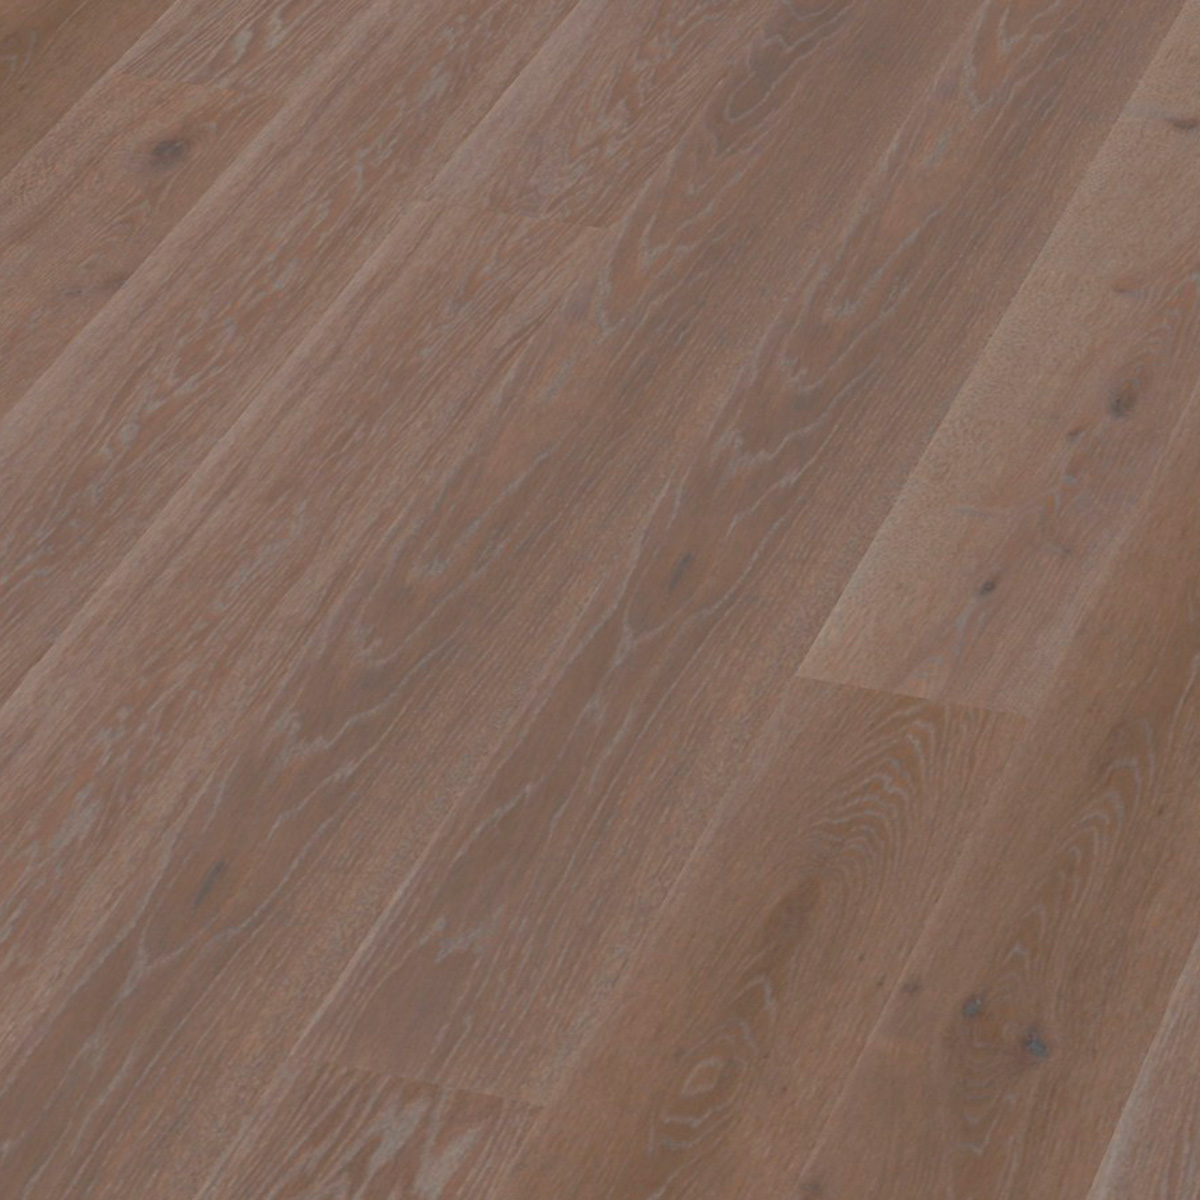 Parchet stratificat stejar india grey lp plank_1